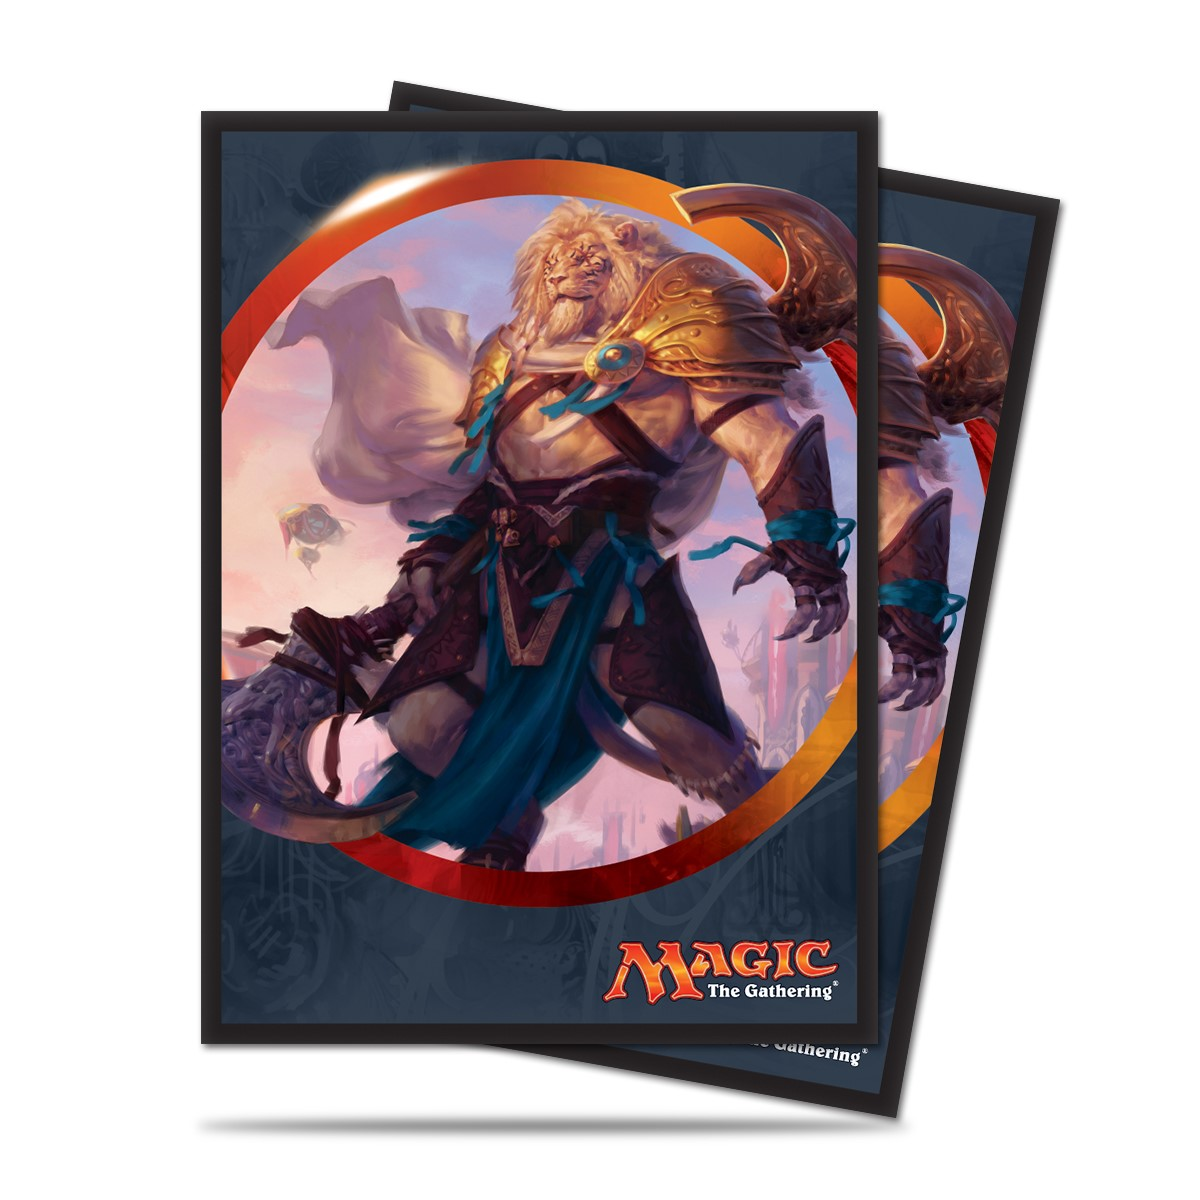 Magic The Gathering: Aether Revolt Standard Deck Protectors - Ajani Unyielding (80) Box Front